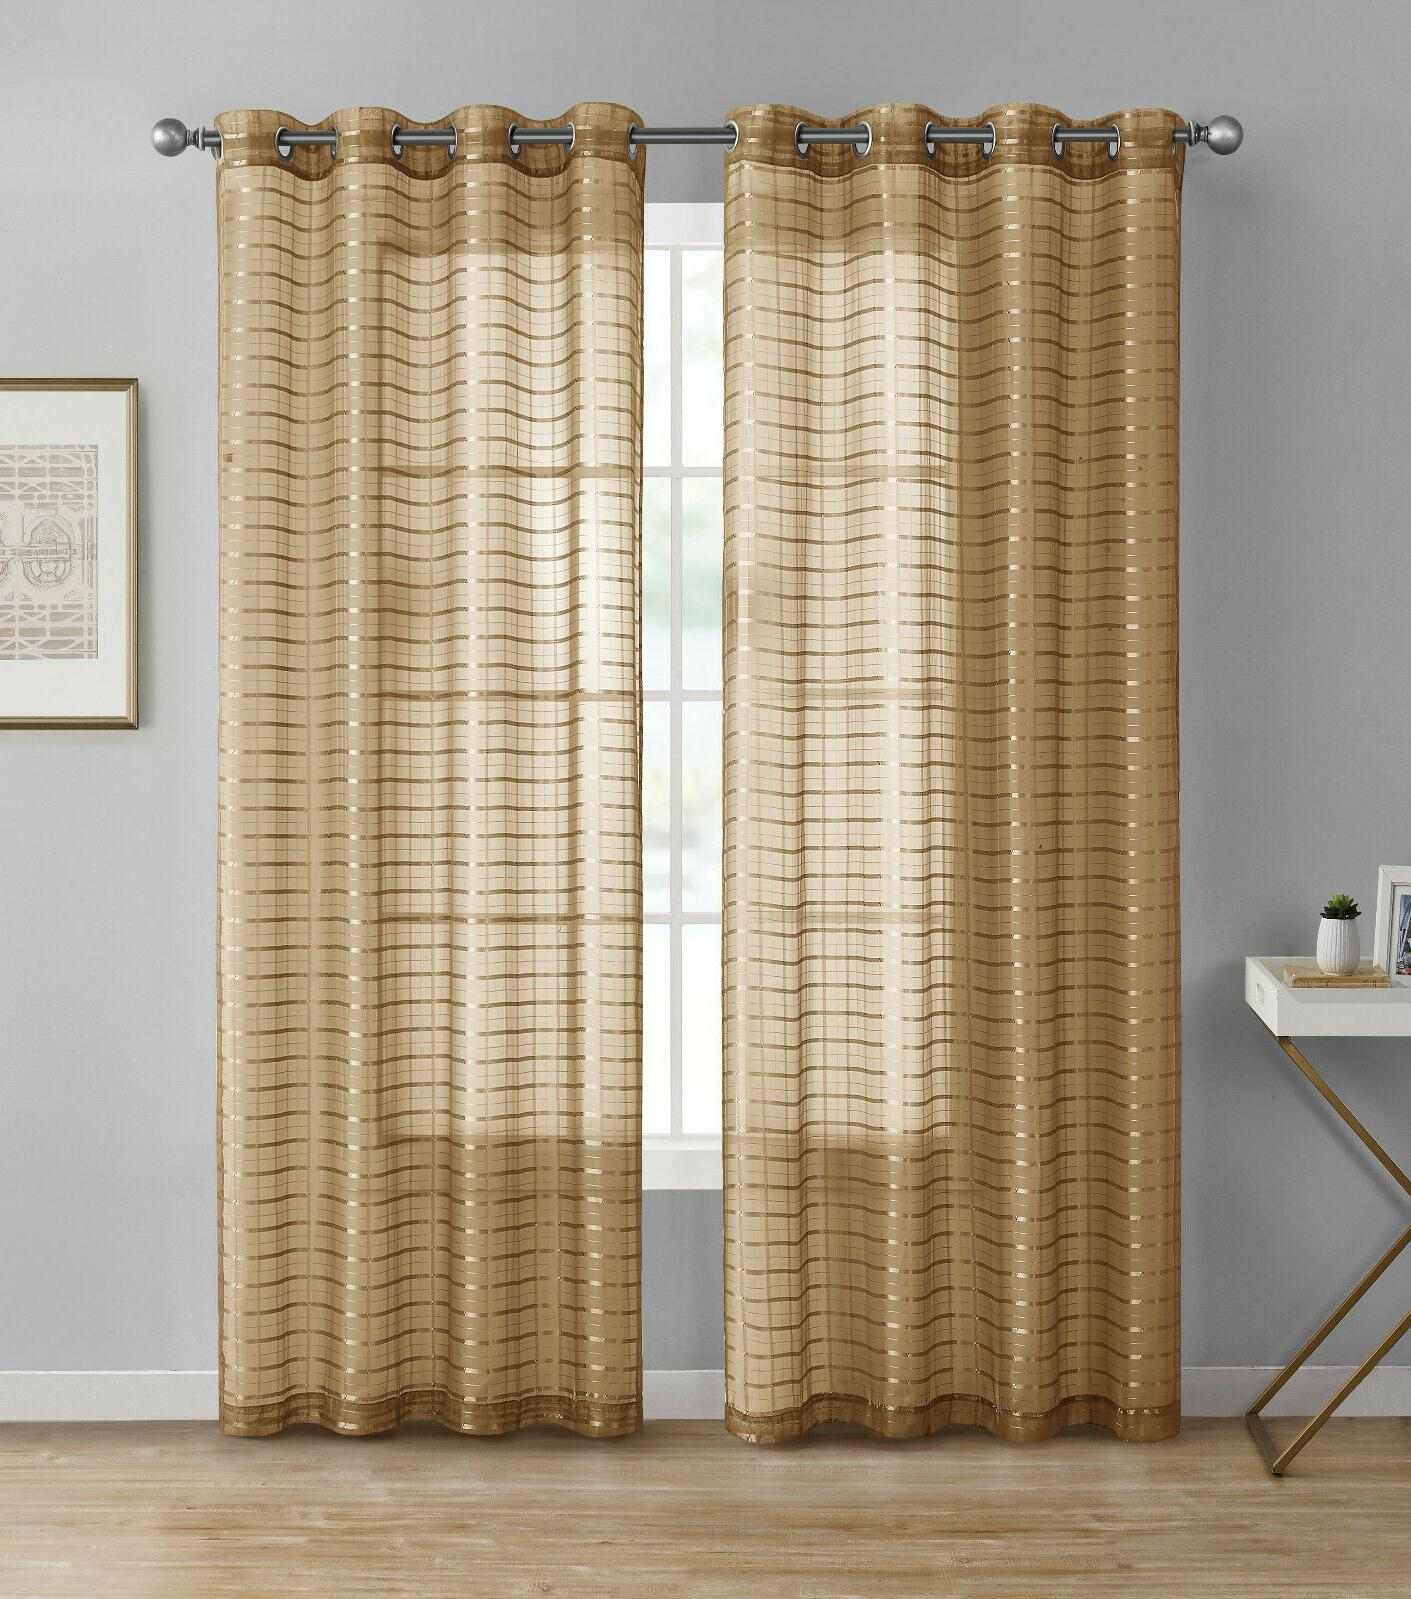 2 Pack: Semi Plaid Curtains - Assorted